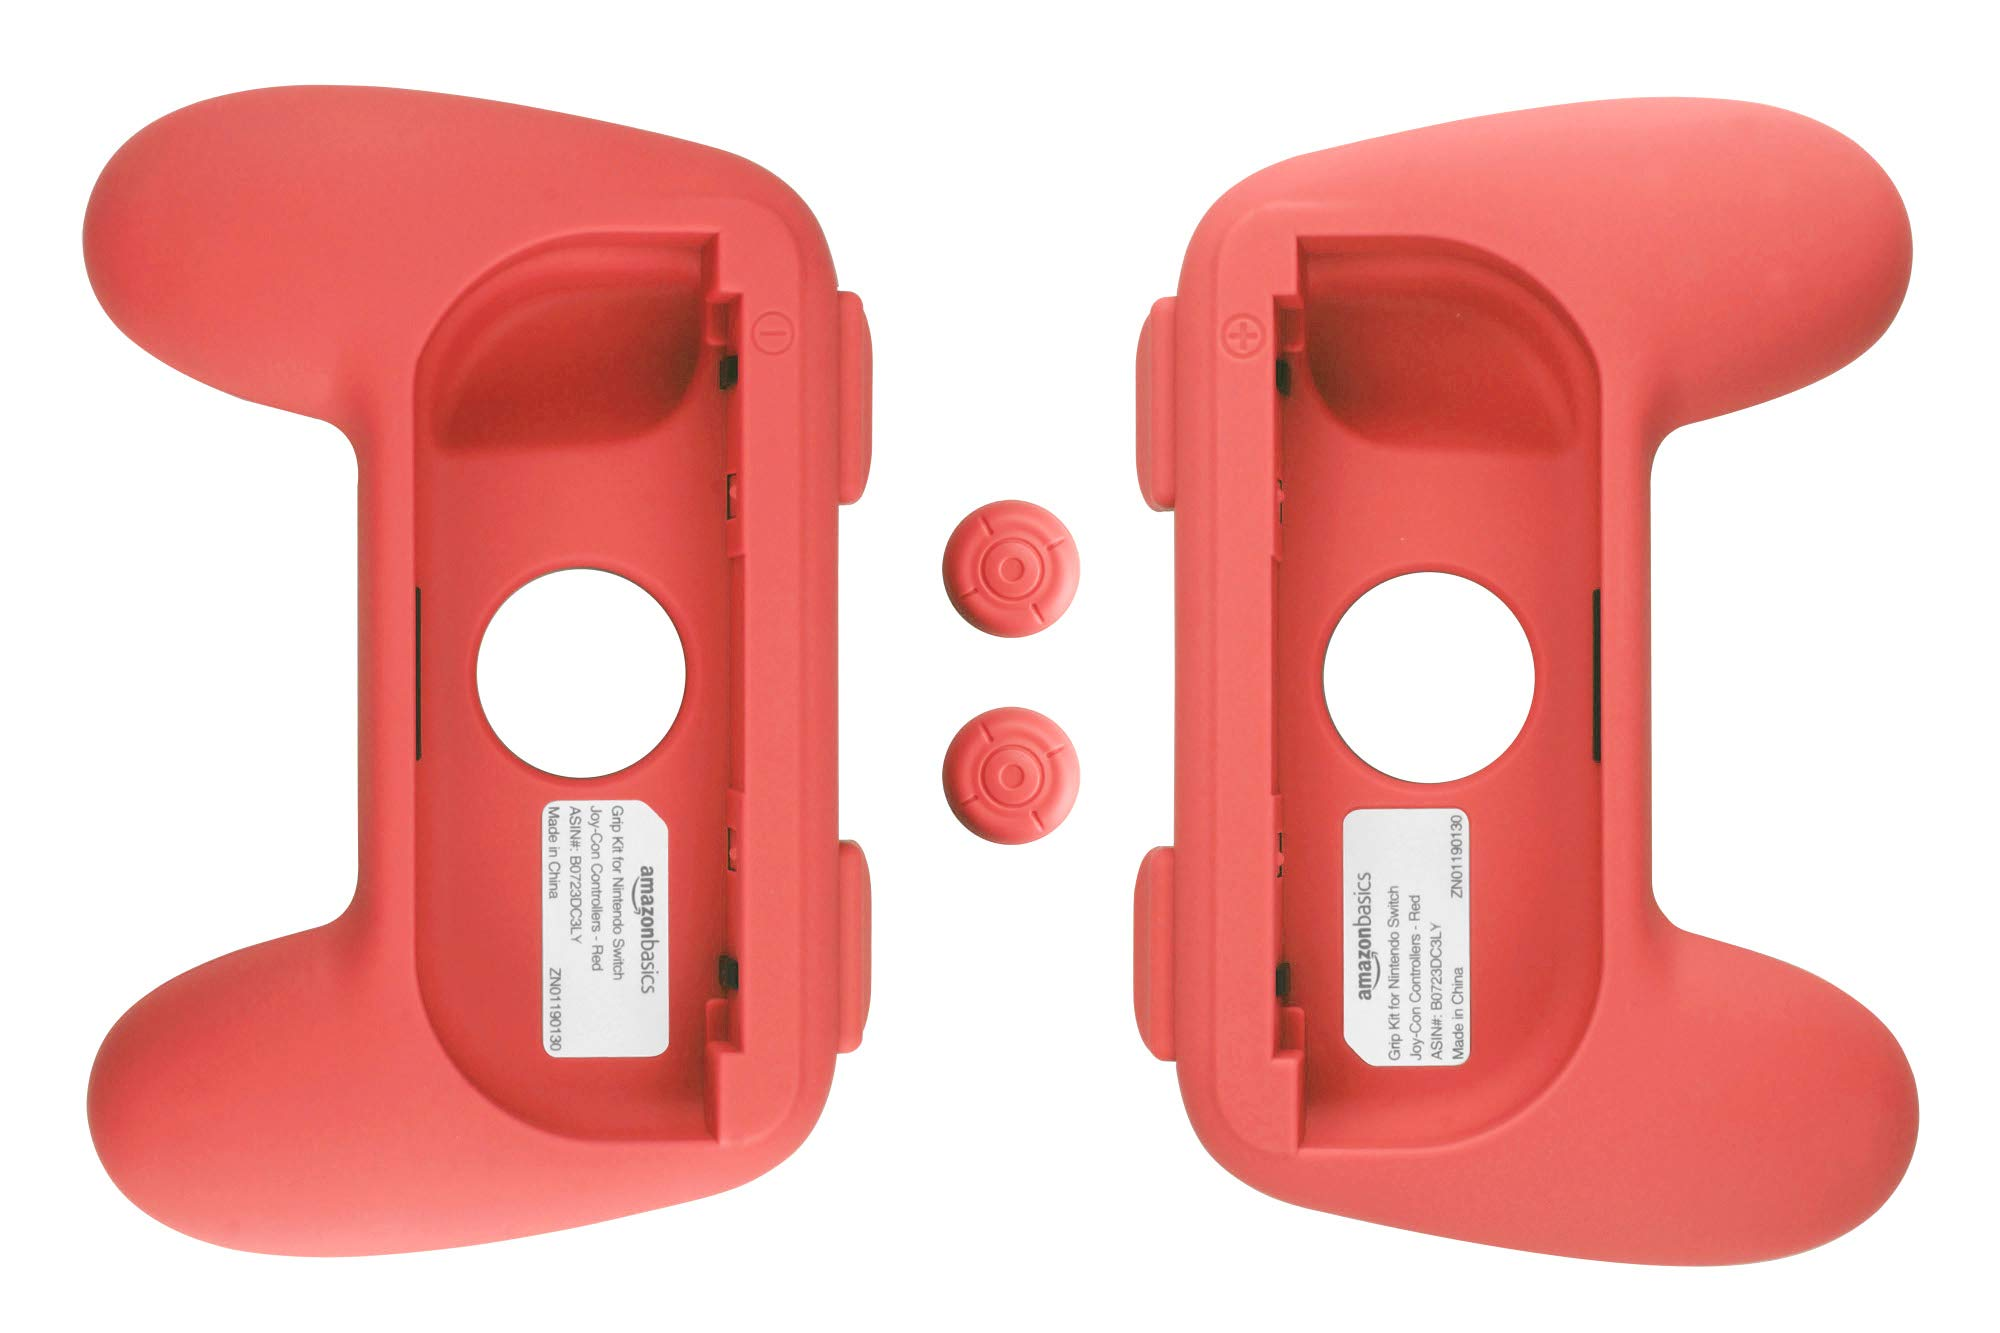 Amazon Basics Grip Kit for Nintendo Switch Joy-Con Controllers - Red